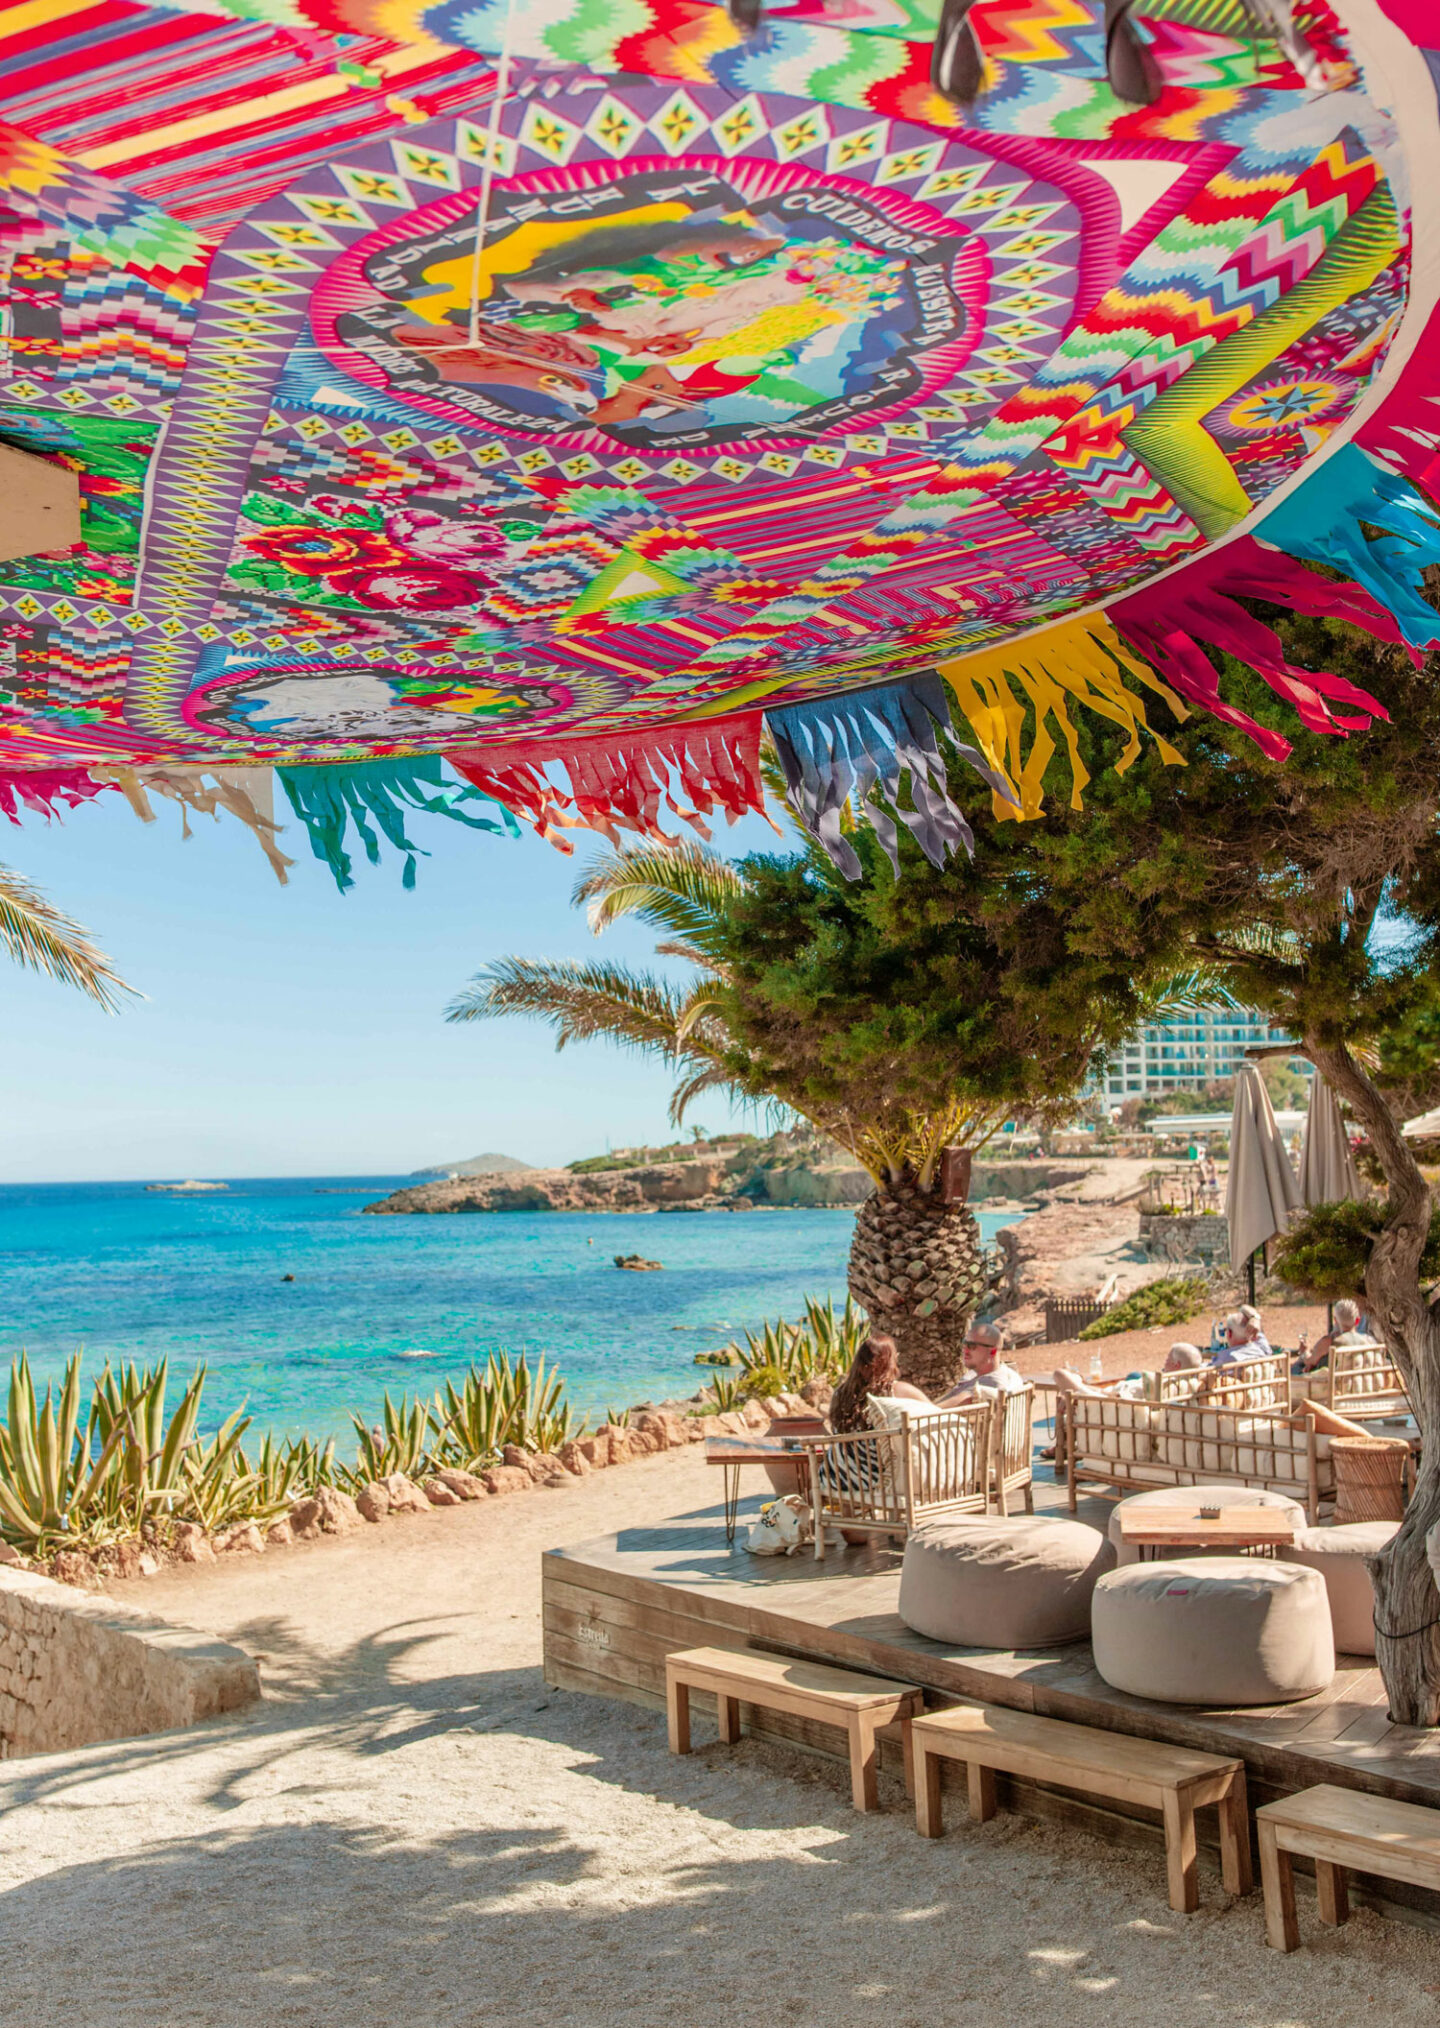 Top-things-to-do-in-Ibiza-Bucket-list--Instagram-Story-Template--kelseyinlondon-Kelsey-Heinrichs--What-to-do-in-Ibiza--Where-to-go-in-Ibiza-top-places-in-Ibiza-aiyanna